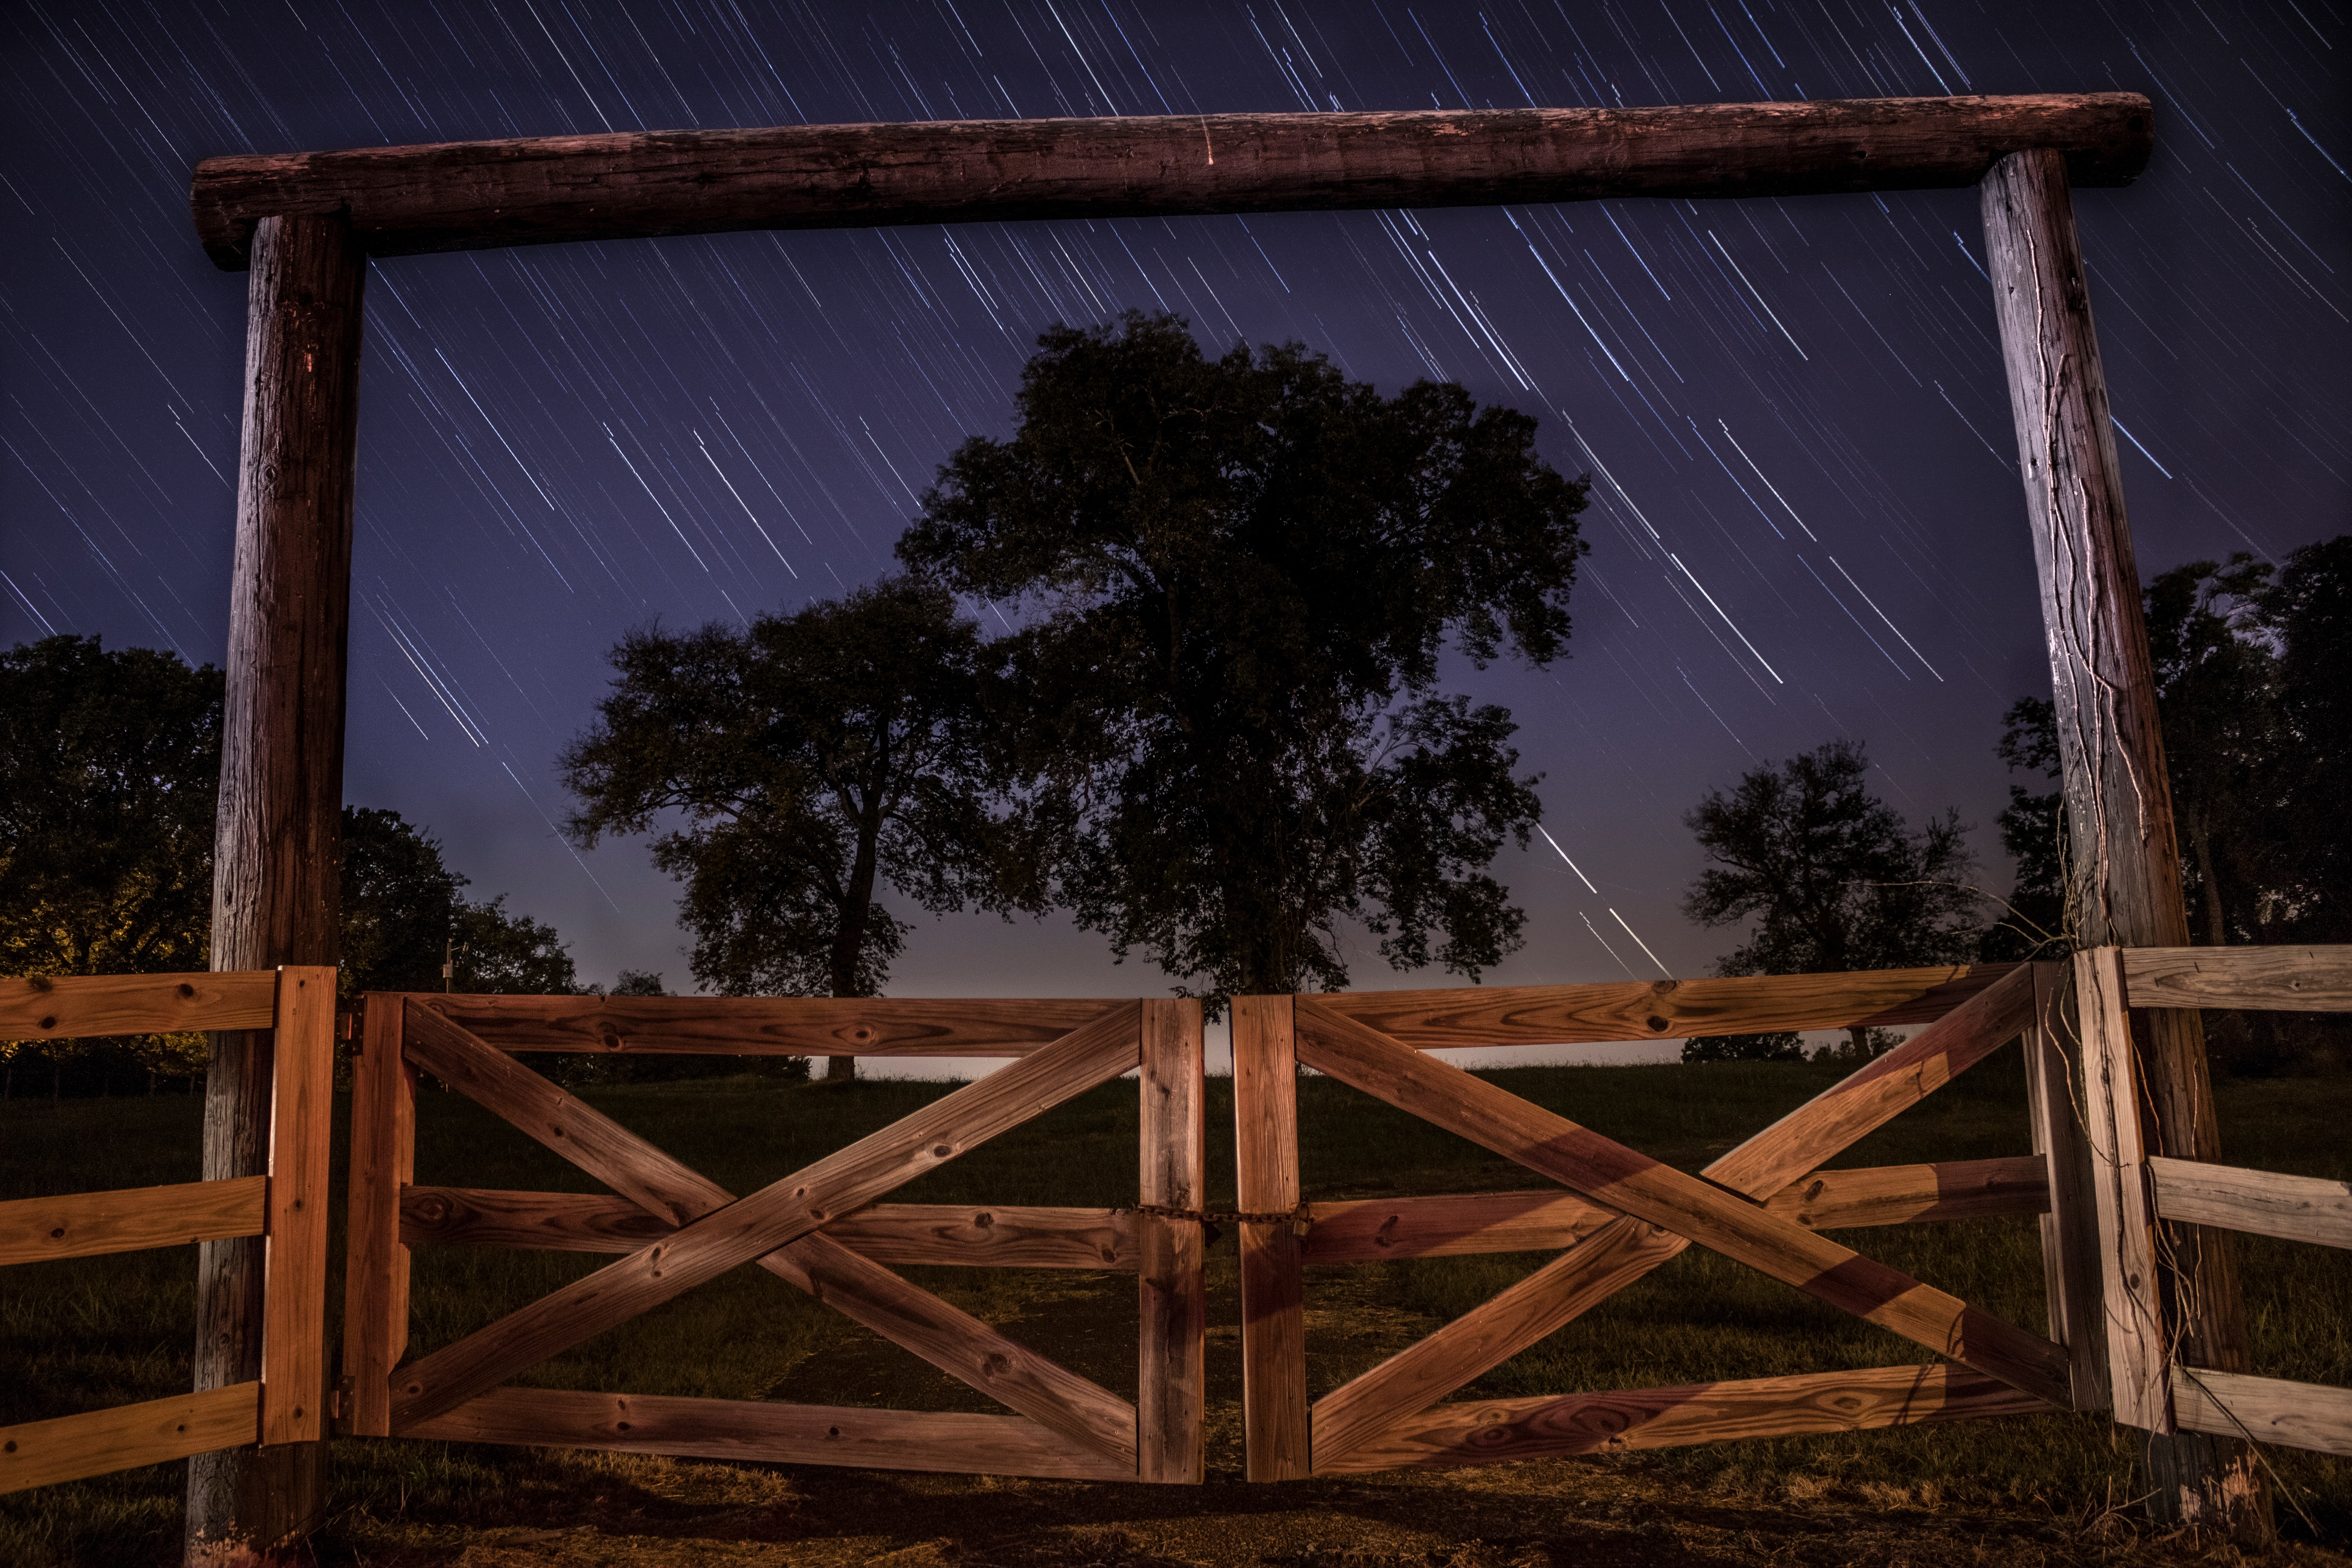 An archway with a gated fence in Lebanon, featuring blurry star trails in the background